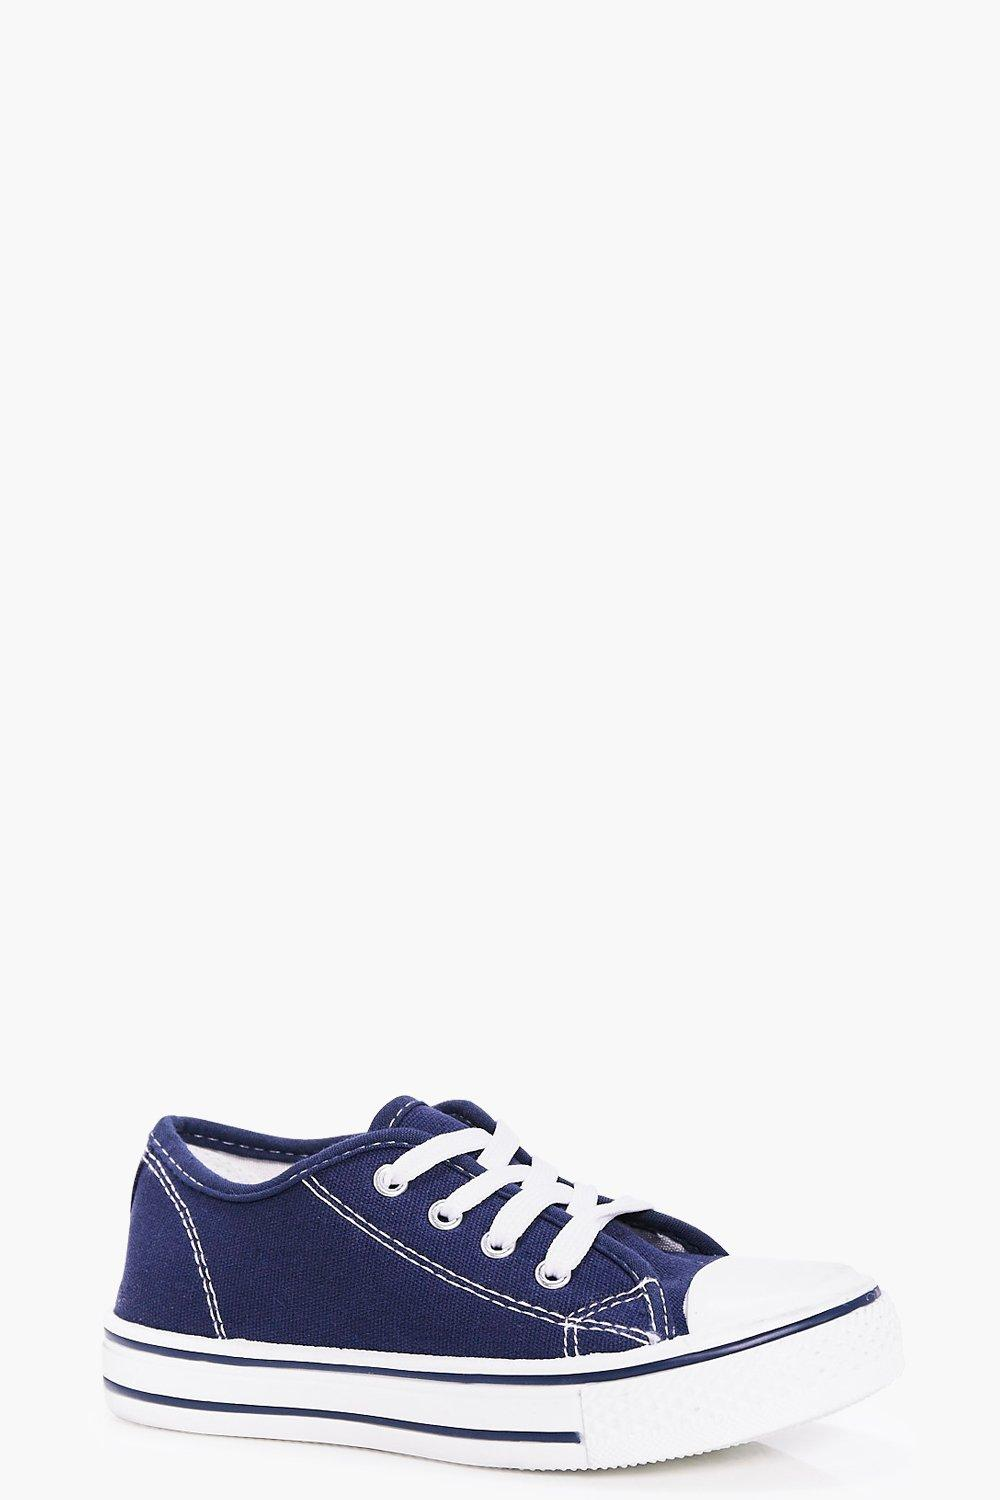 Boys Lace Up Pump